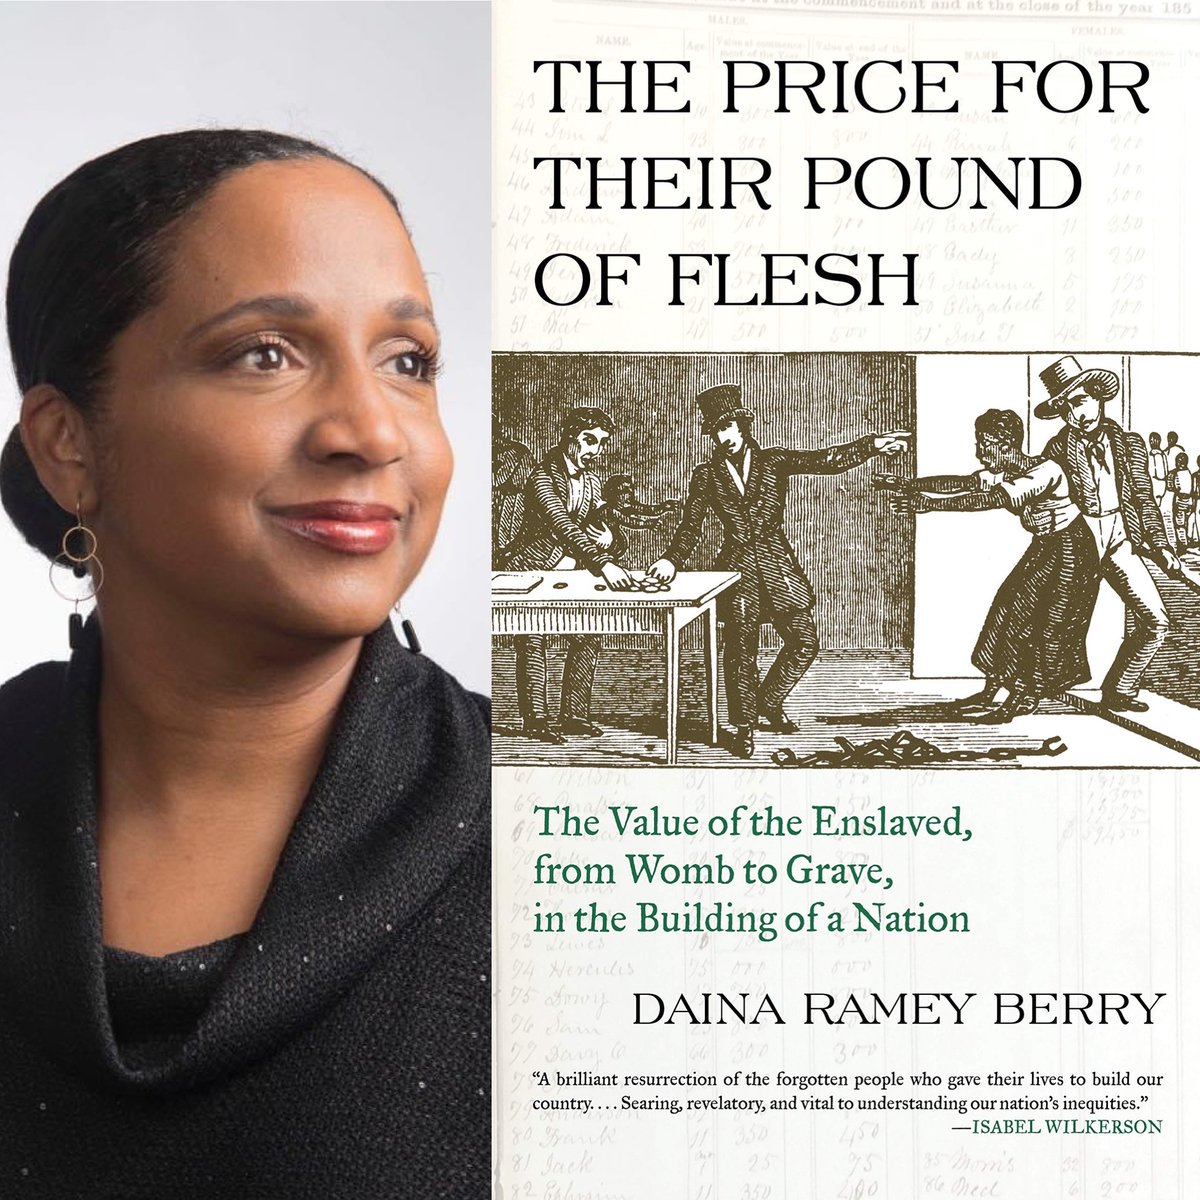 "#BOOK84 Daina Ramey Berry's The Price for Their Pound of Flesh: ""...exploitation of both sexes occurred when enslavers forced enslaved people to copulate against their will--which I labeled third-party rape."" #slaveryarchive #WomenAlsoKnowHistory pic.twitter.com/mH16zHaY1C"